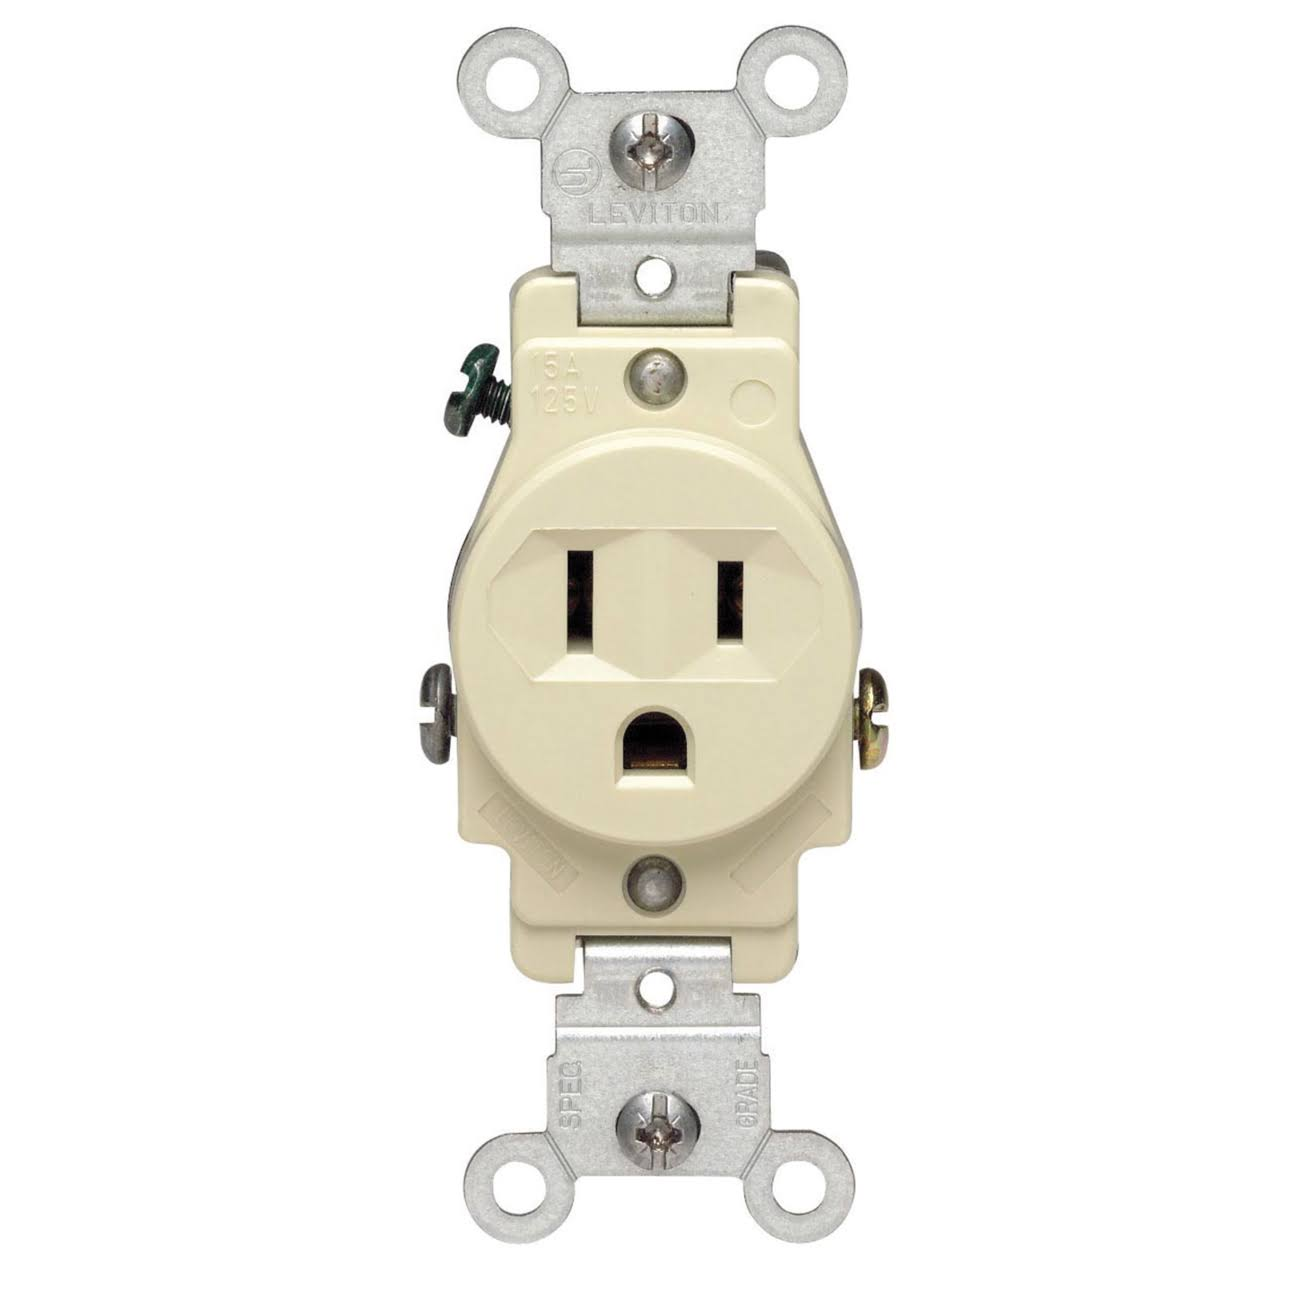 Leviton 5015-I Grounded Outlet - Ivory, 15A, 125V